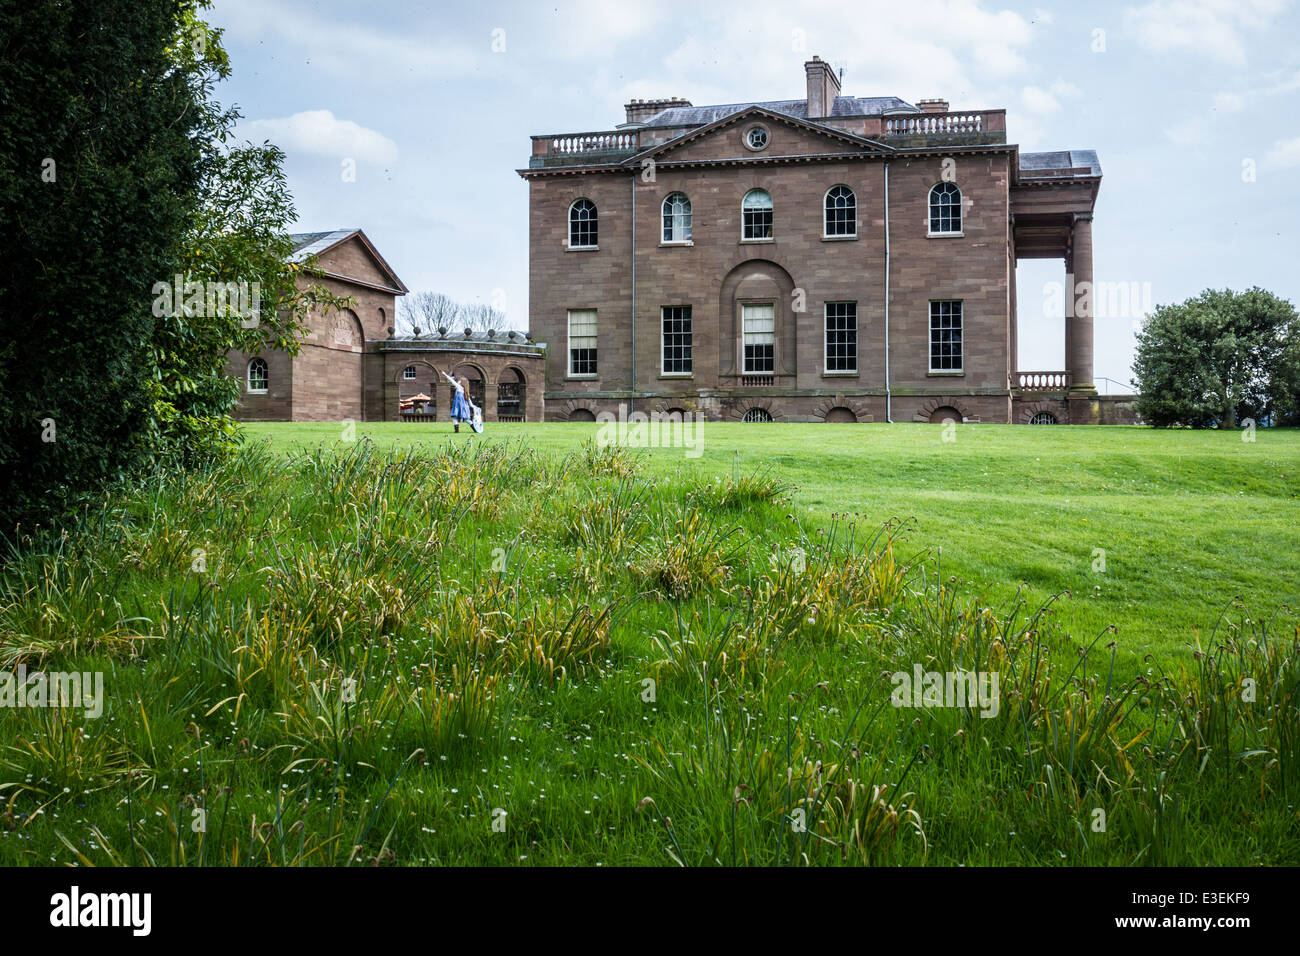 Benthall Hall Is A 16th Century English Country House